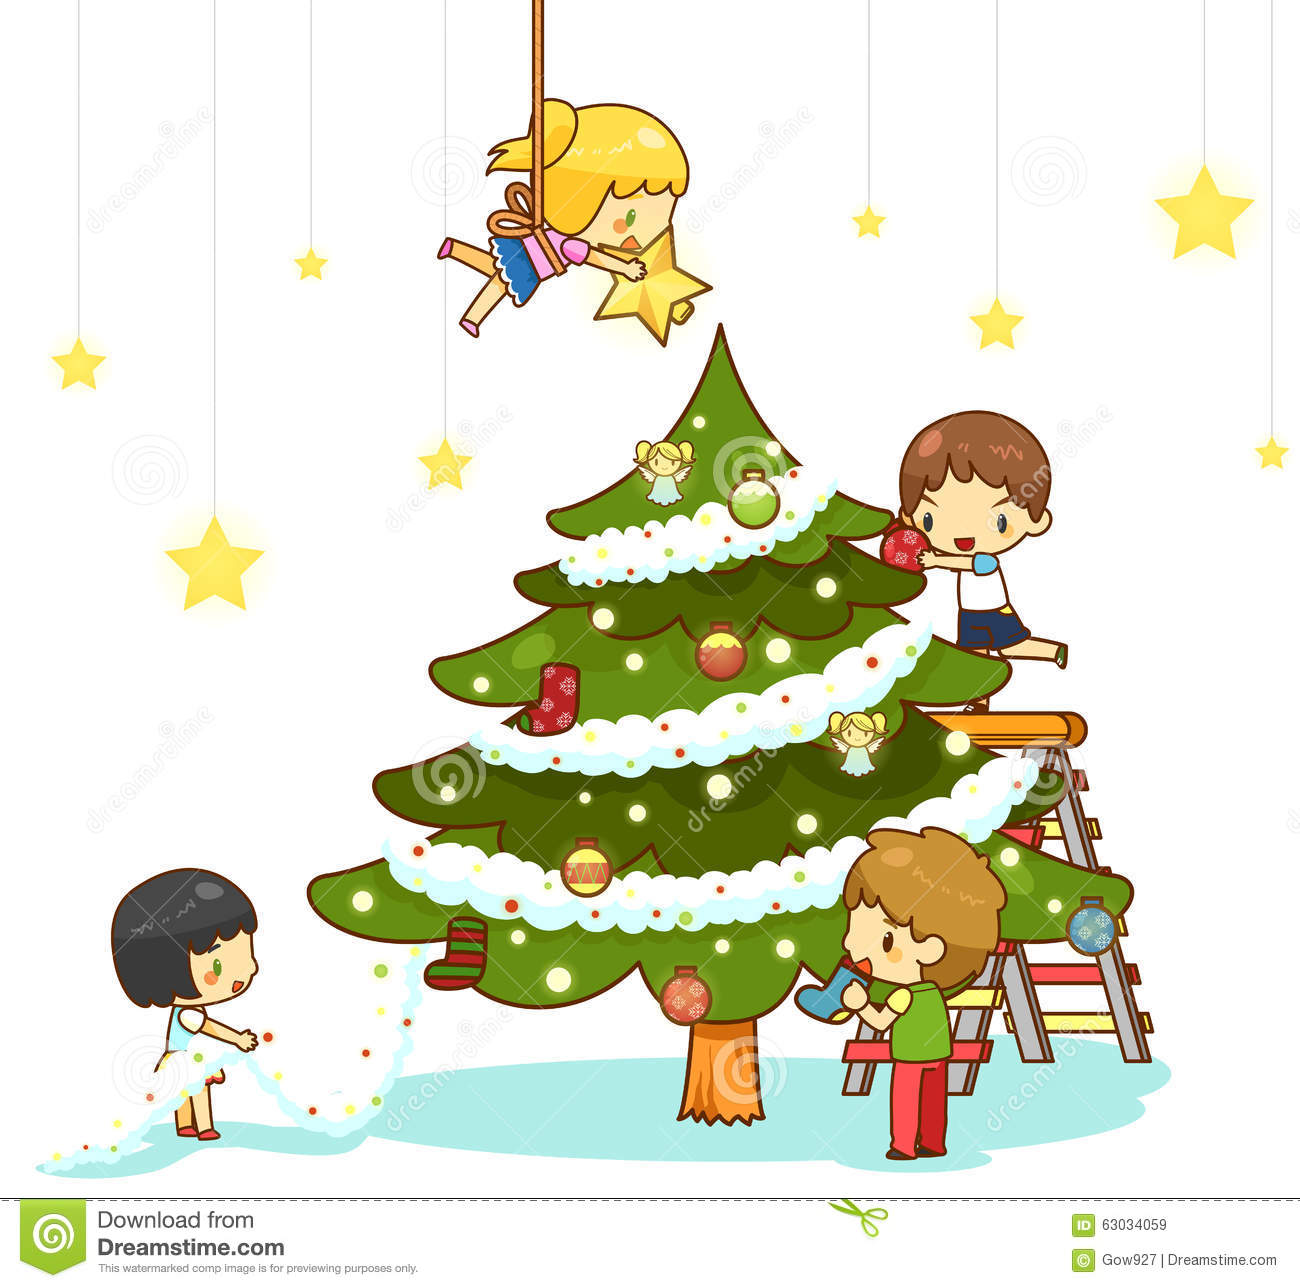 Decorate Clipart child